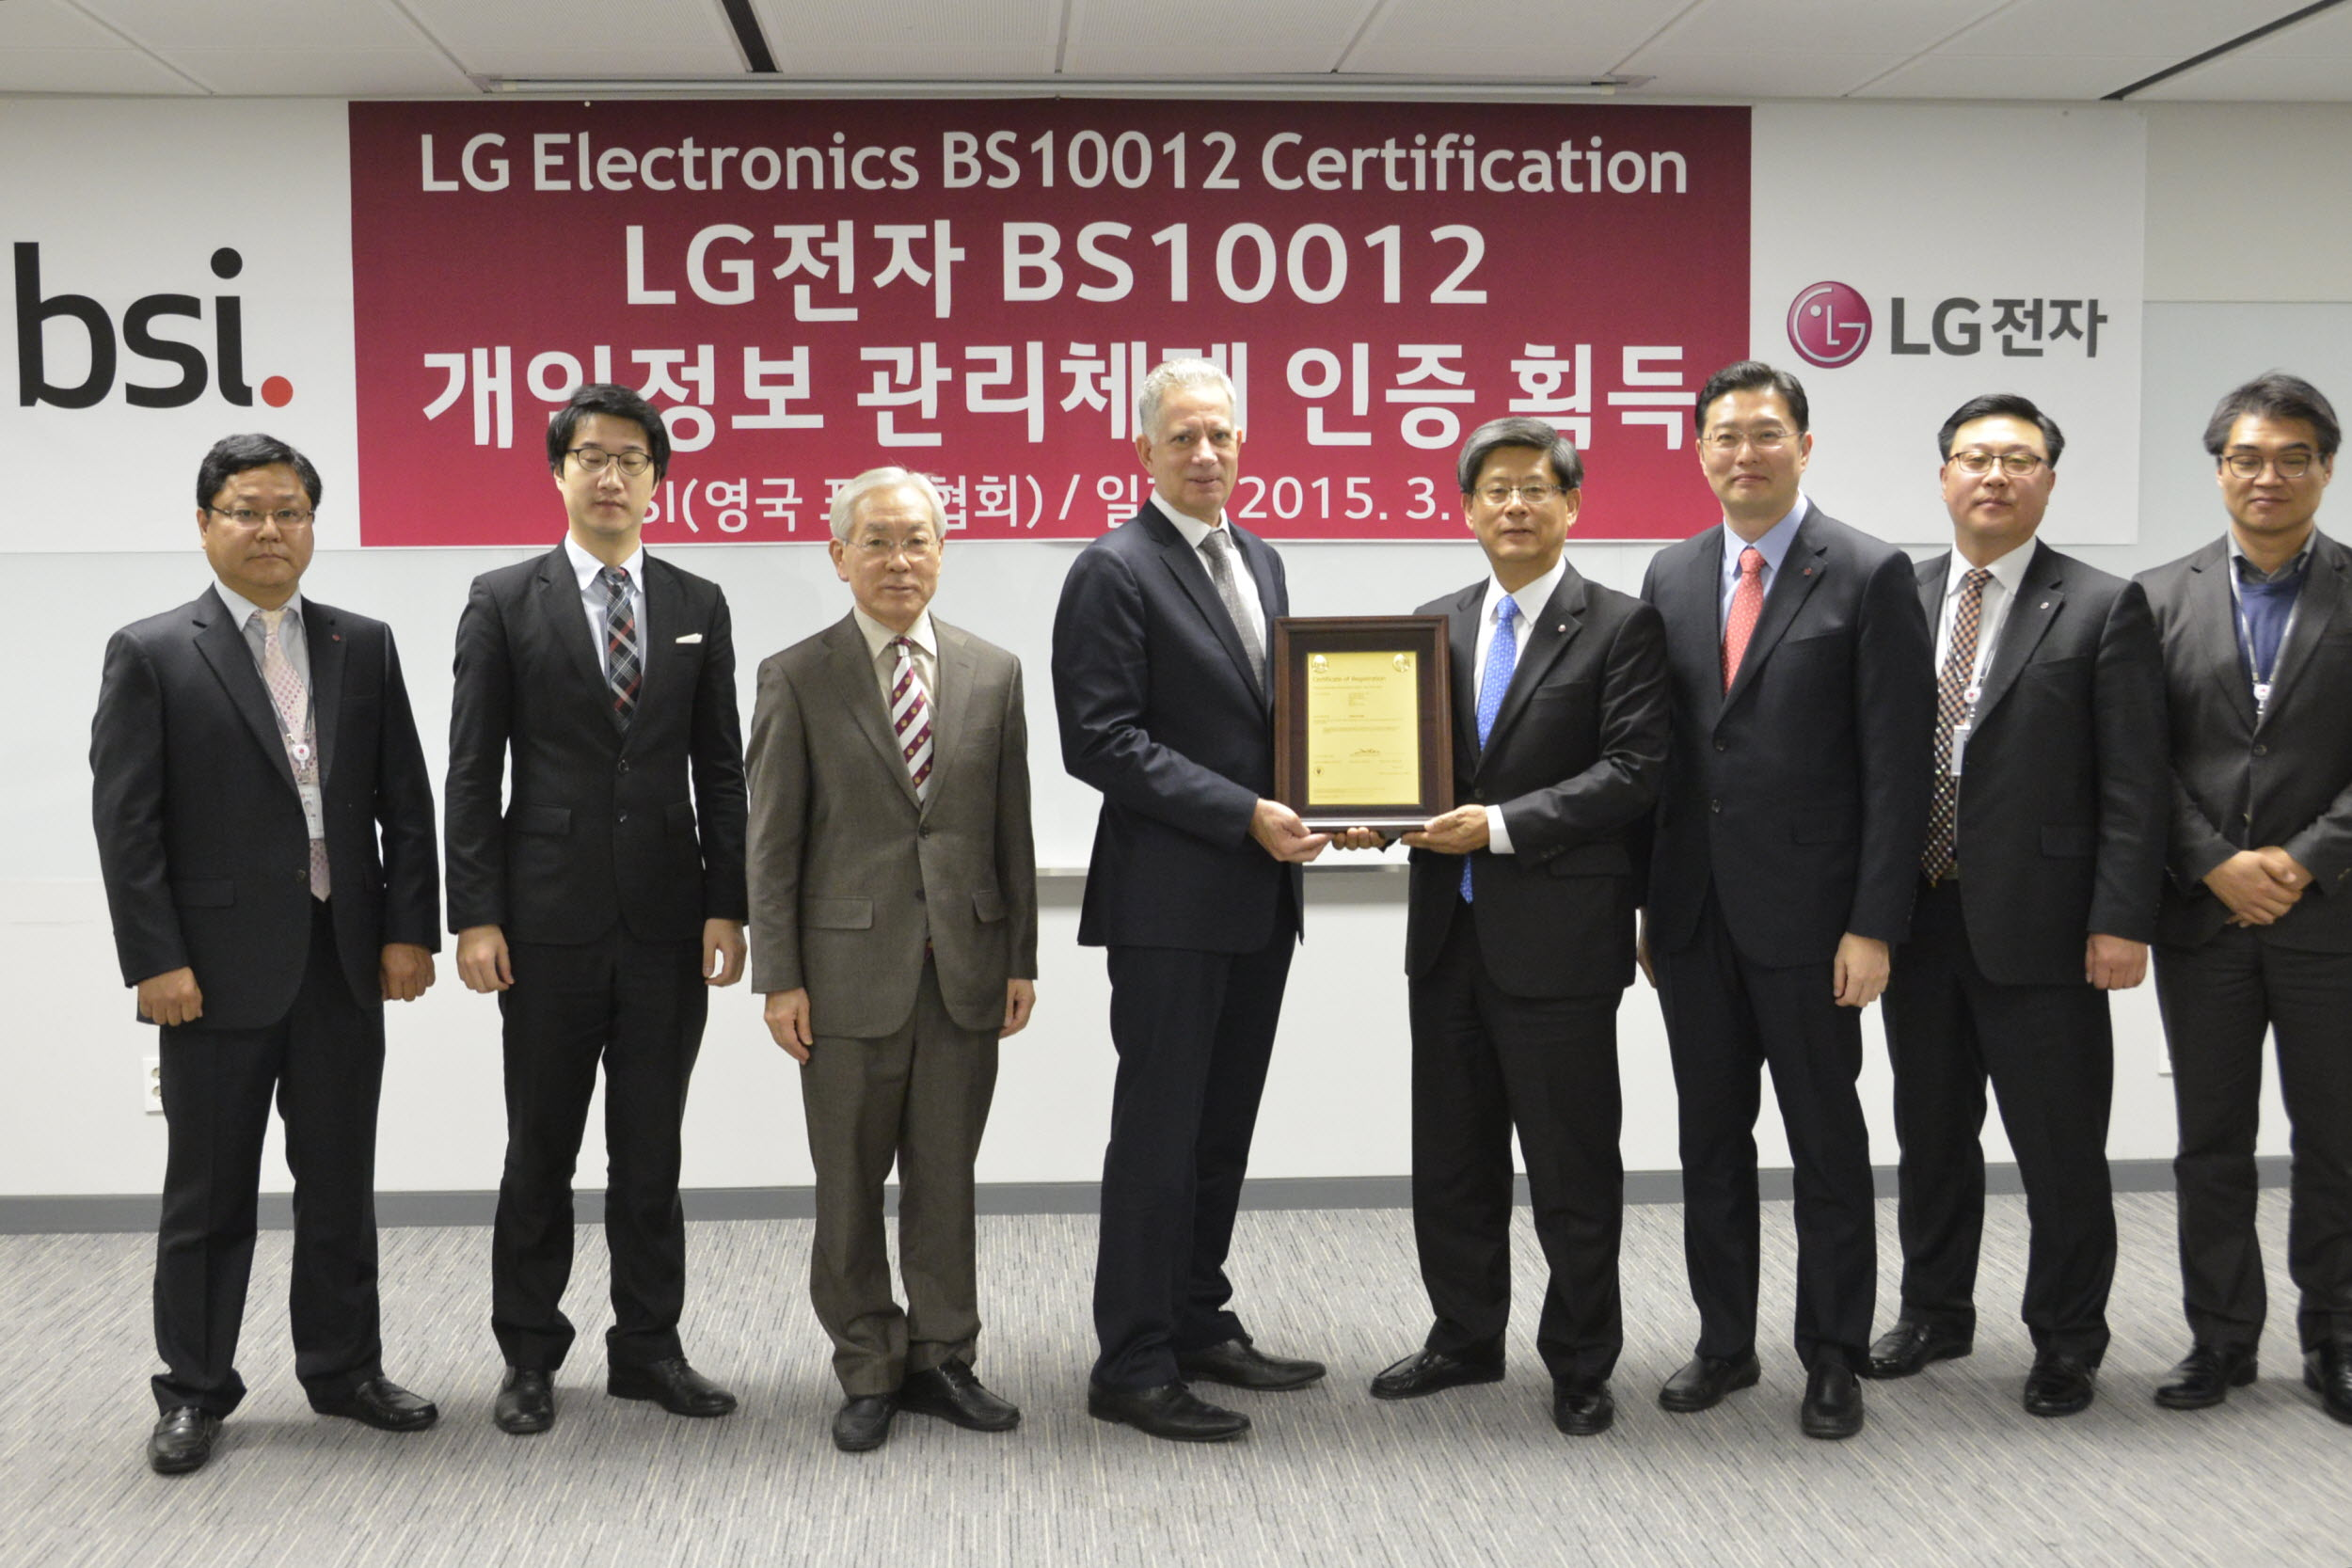 Officials from LG Electronics accept the BS10012 certification from an official representing the British Standards Institute on March 24.